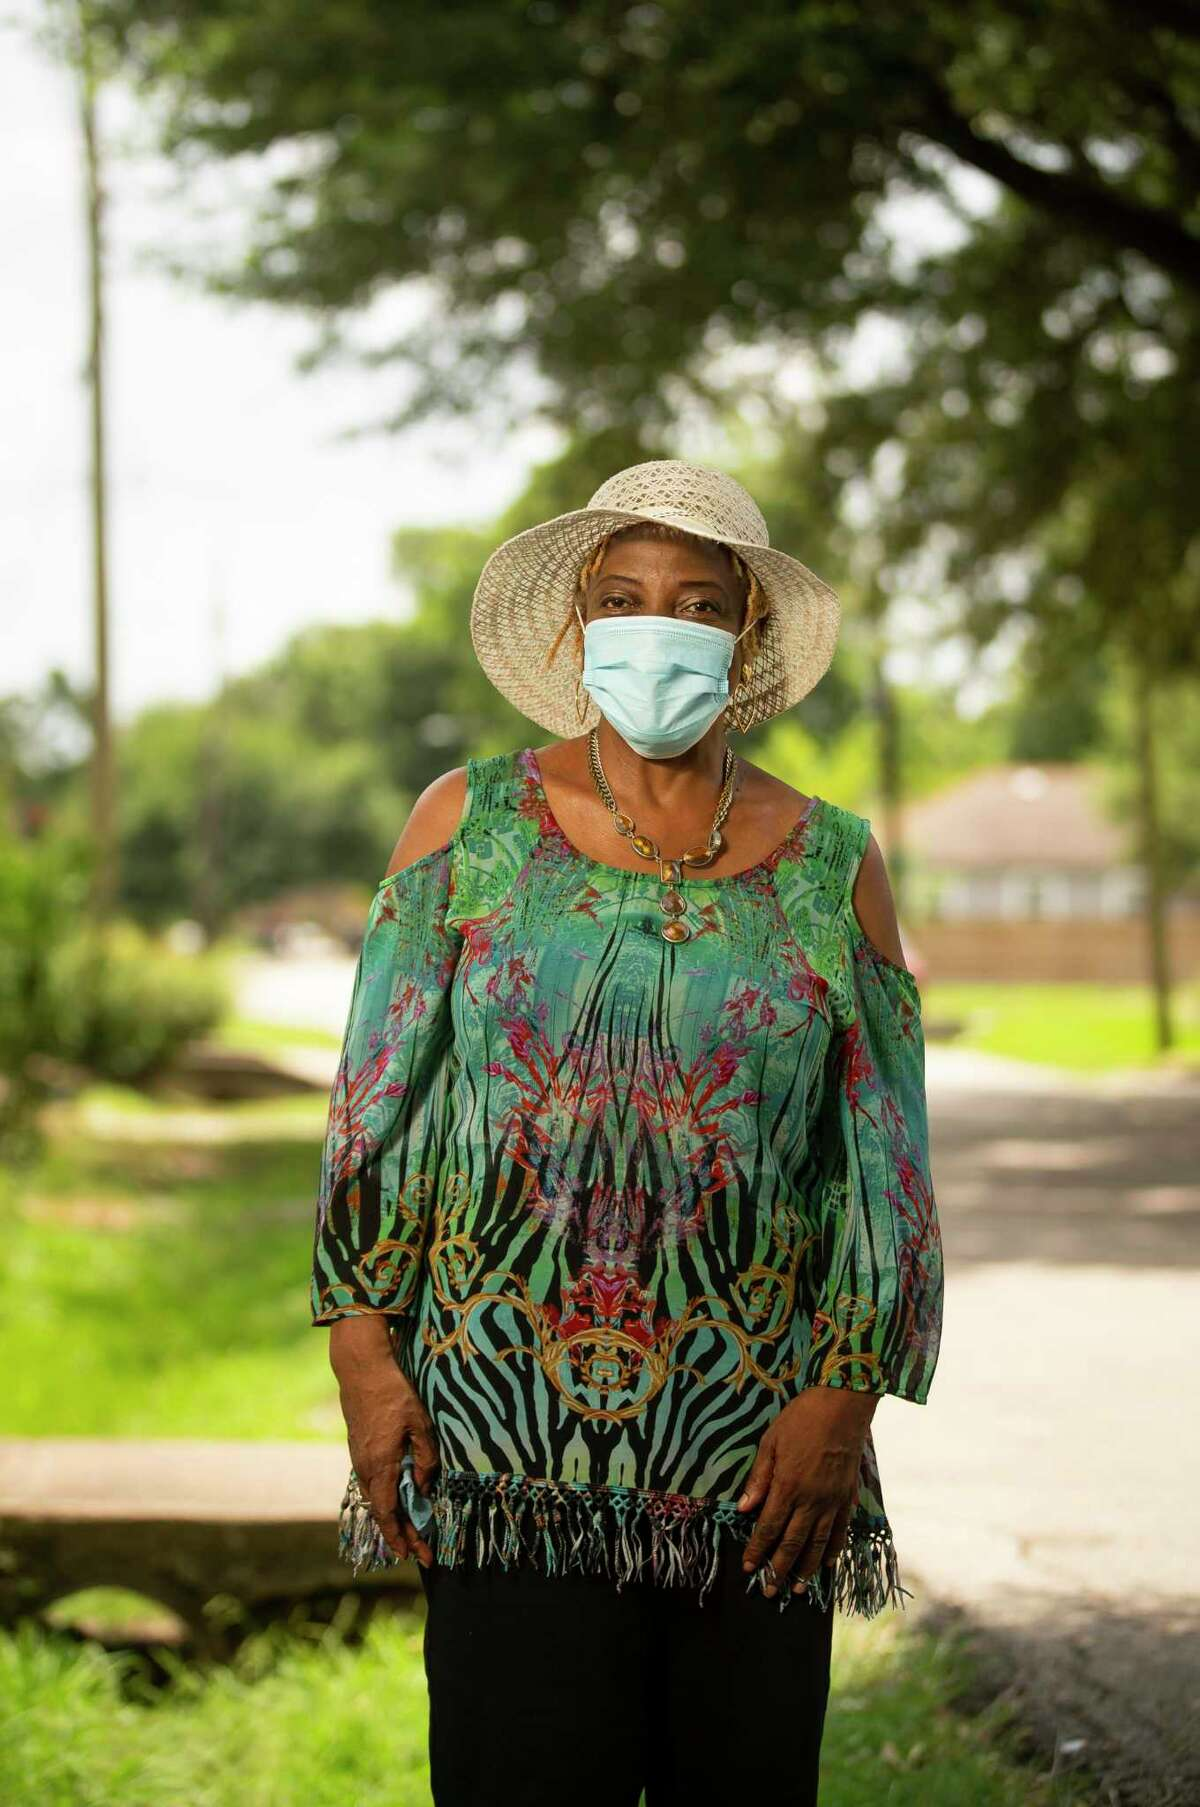 Like many people, Joetta Stevenson has been trying to find ways to talk to unvaccinated friends and family about receiving the vaccine against COVID-19. Photographed outside her home, Sunday, Aug. 1, 2021, in Houston.